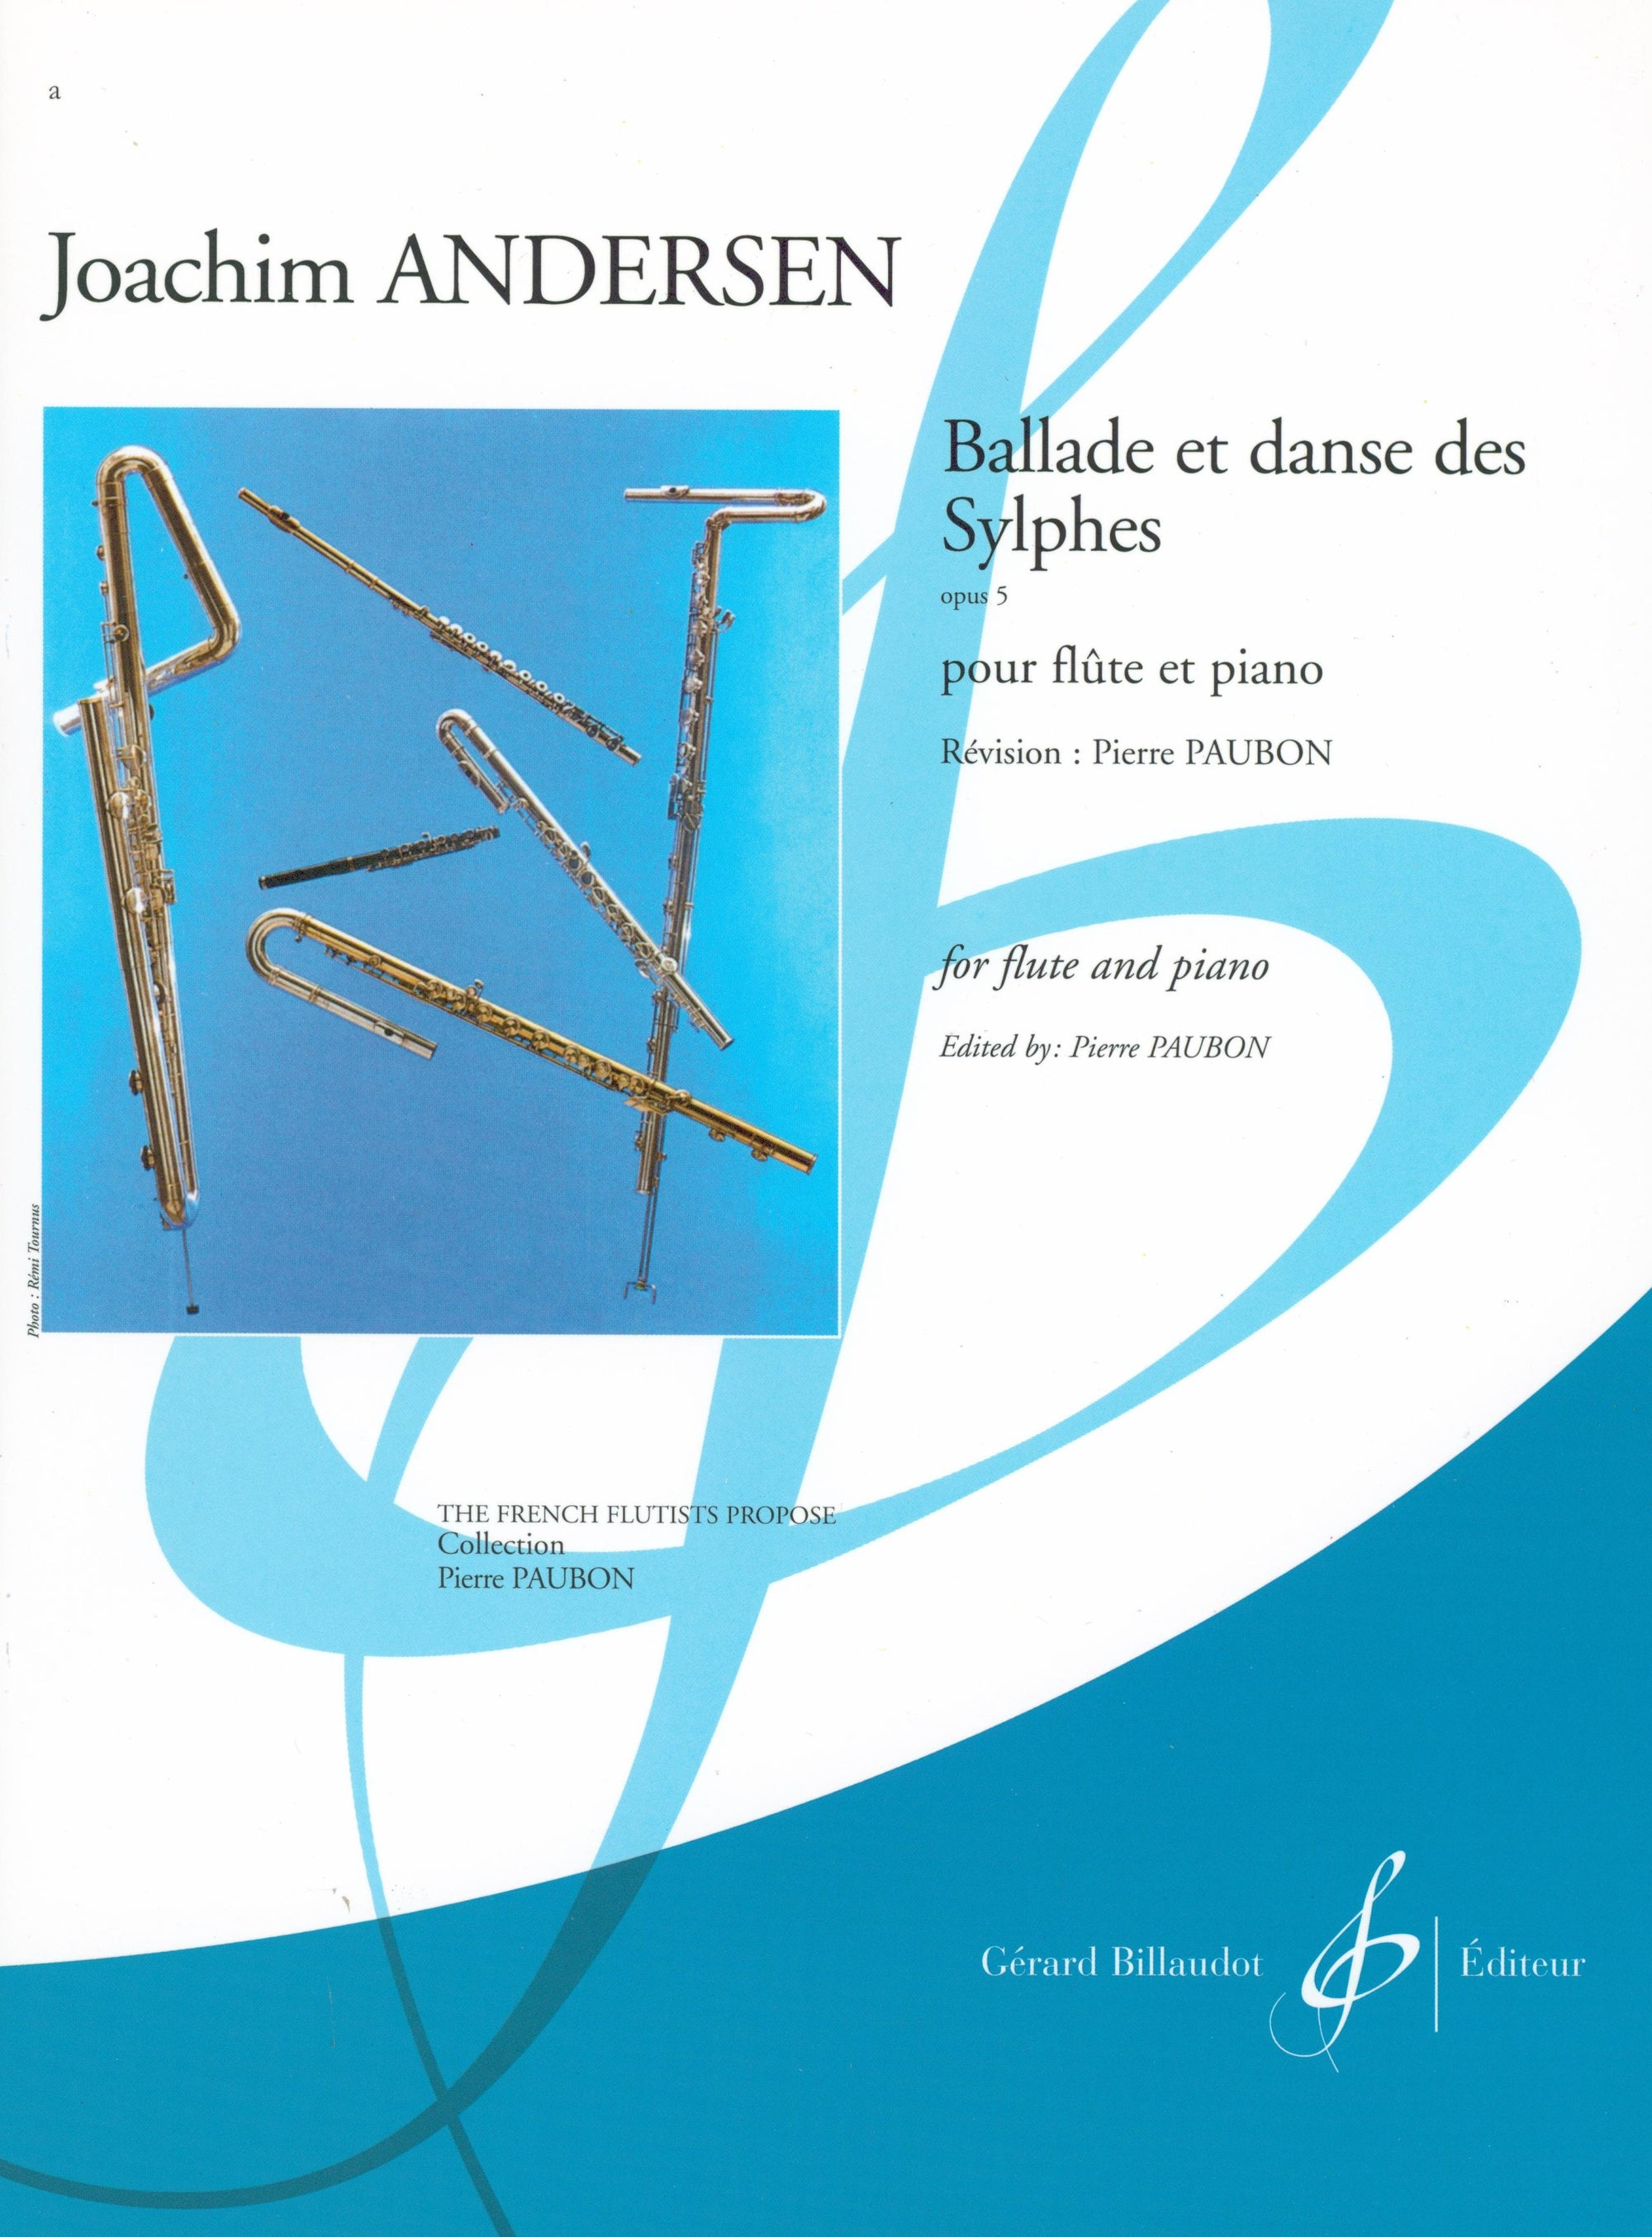 Andersen: Ballad and Dance of the Sylphs, Op. 5 (arr. for flute & piano)